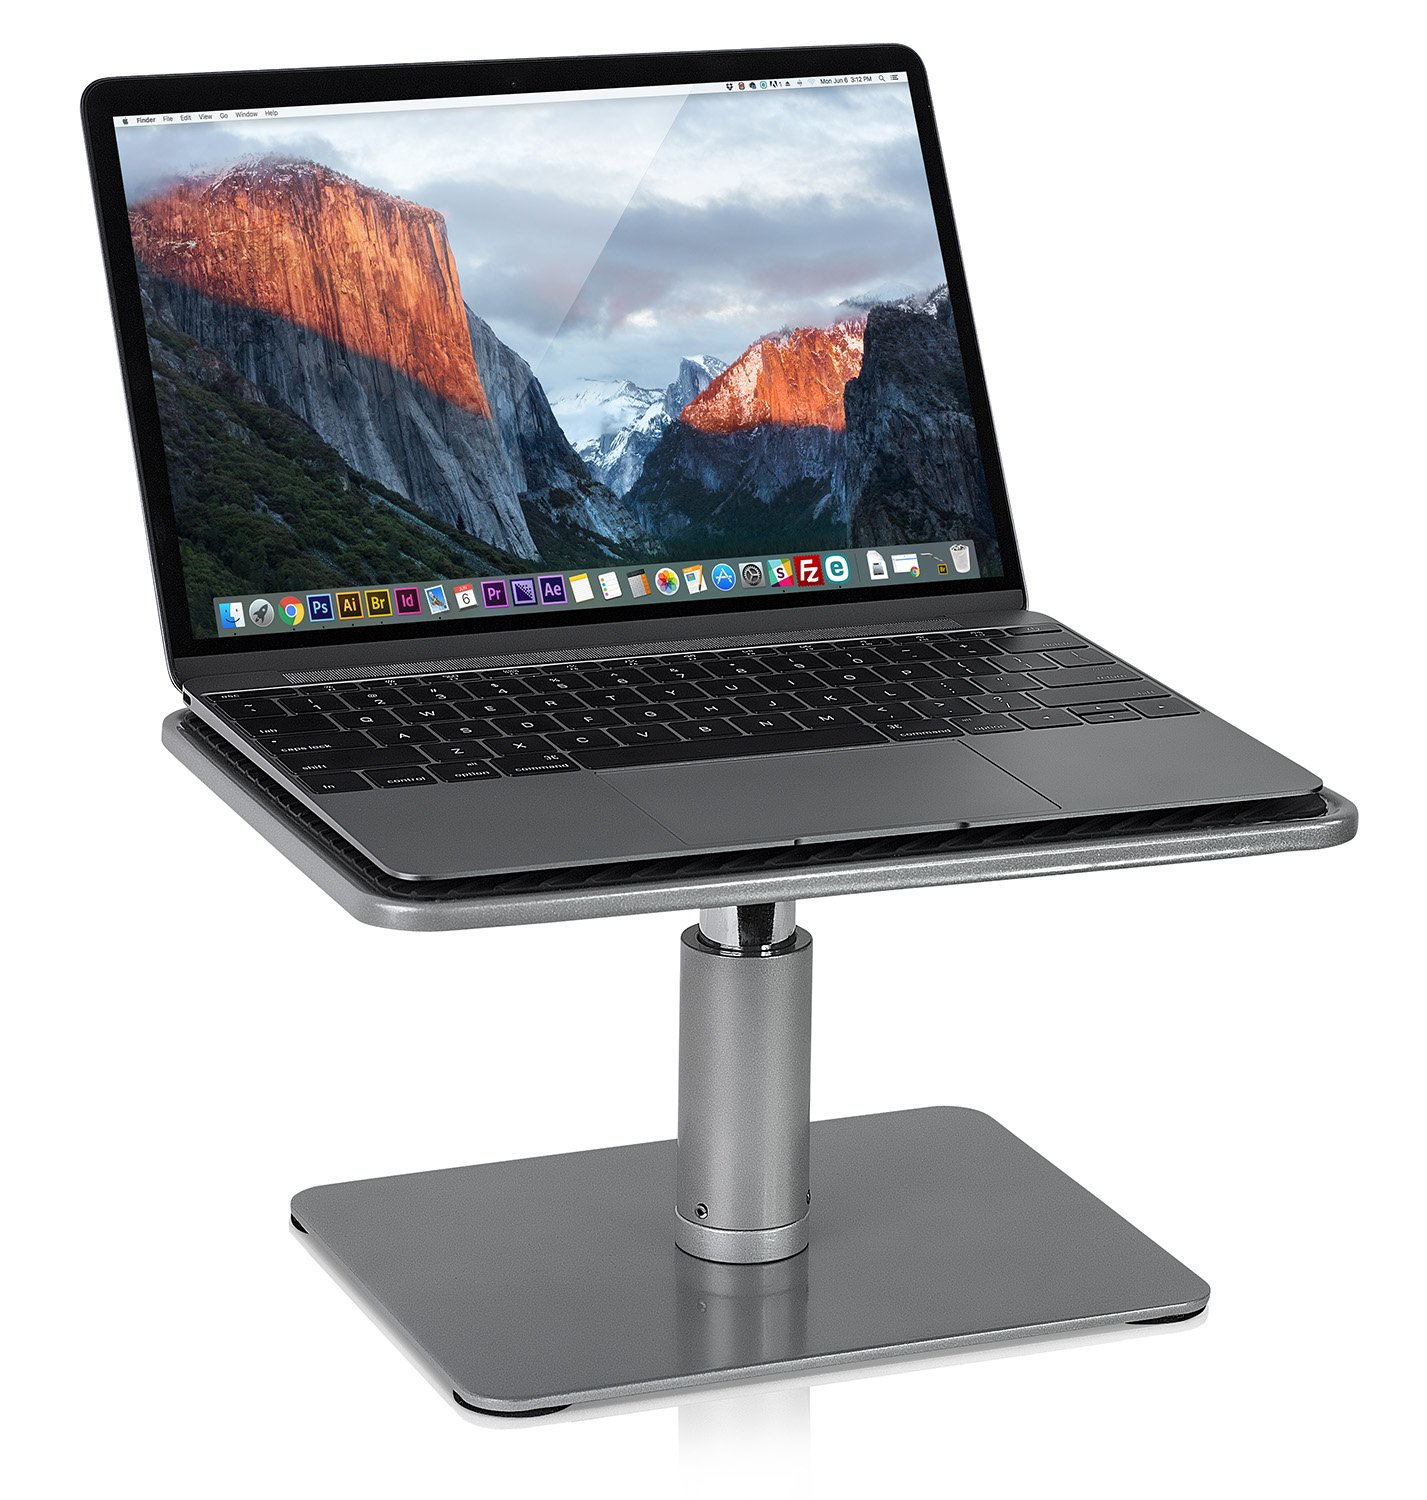 Mount-It! Laptop Stand for MacBook and PC, Monitor Desk Riser, Fits Up to 11 to 15 Inch Computers